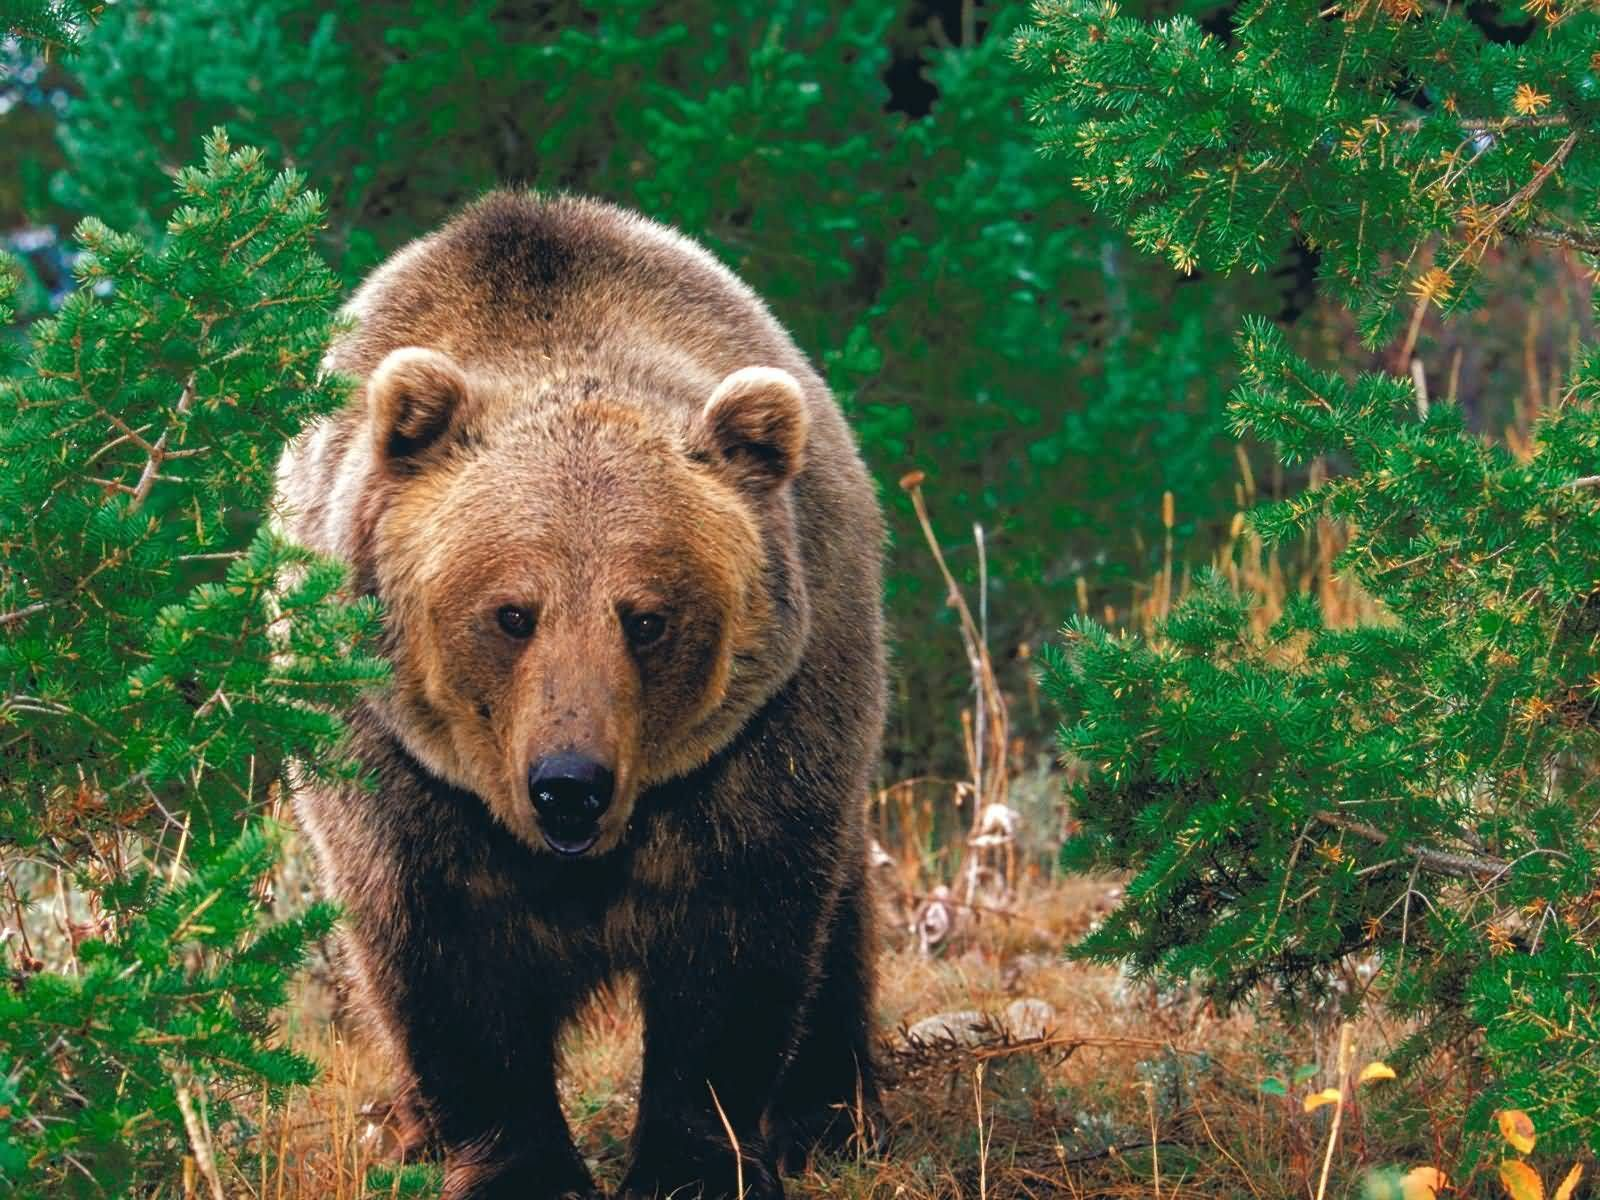 California grizzly bear (Ursus californicus) the California State animal.